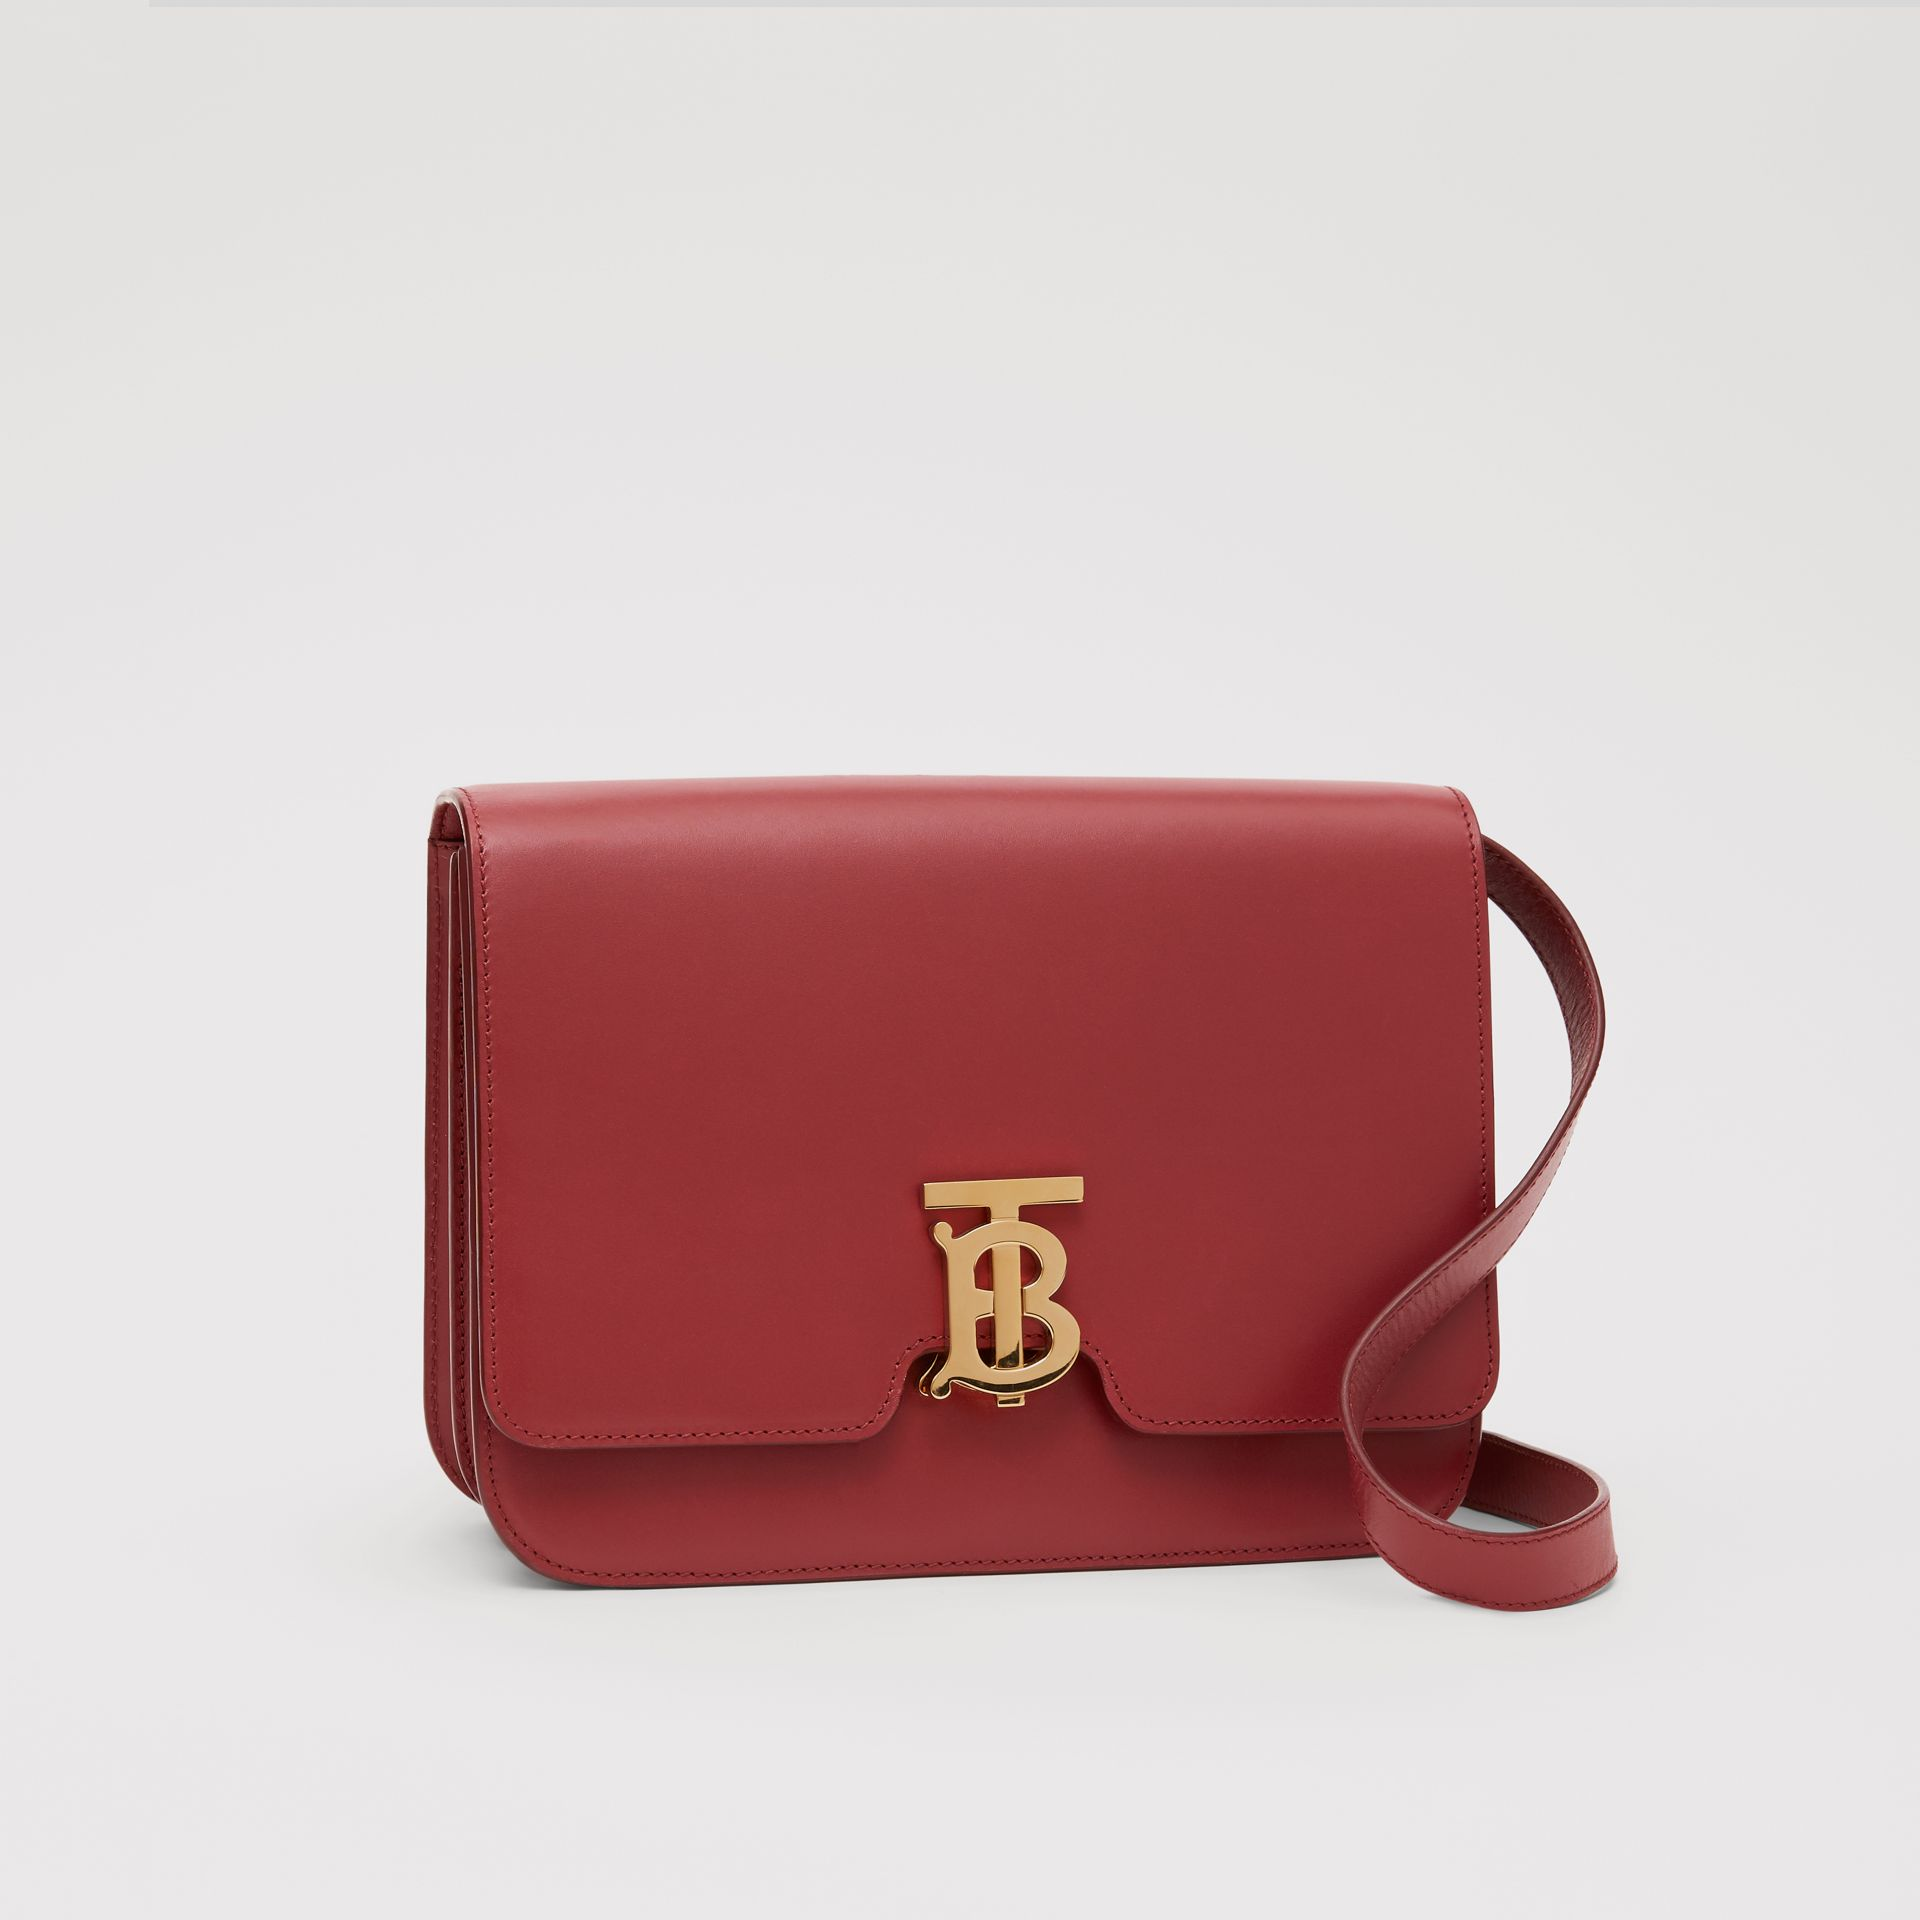 Medium Leather TB Bag in Crimson - Women | Burberry United Kingdom - gallery image 6